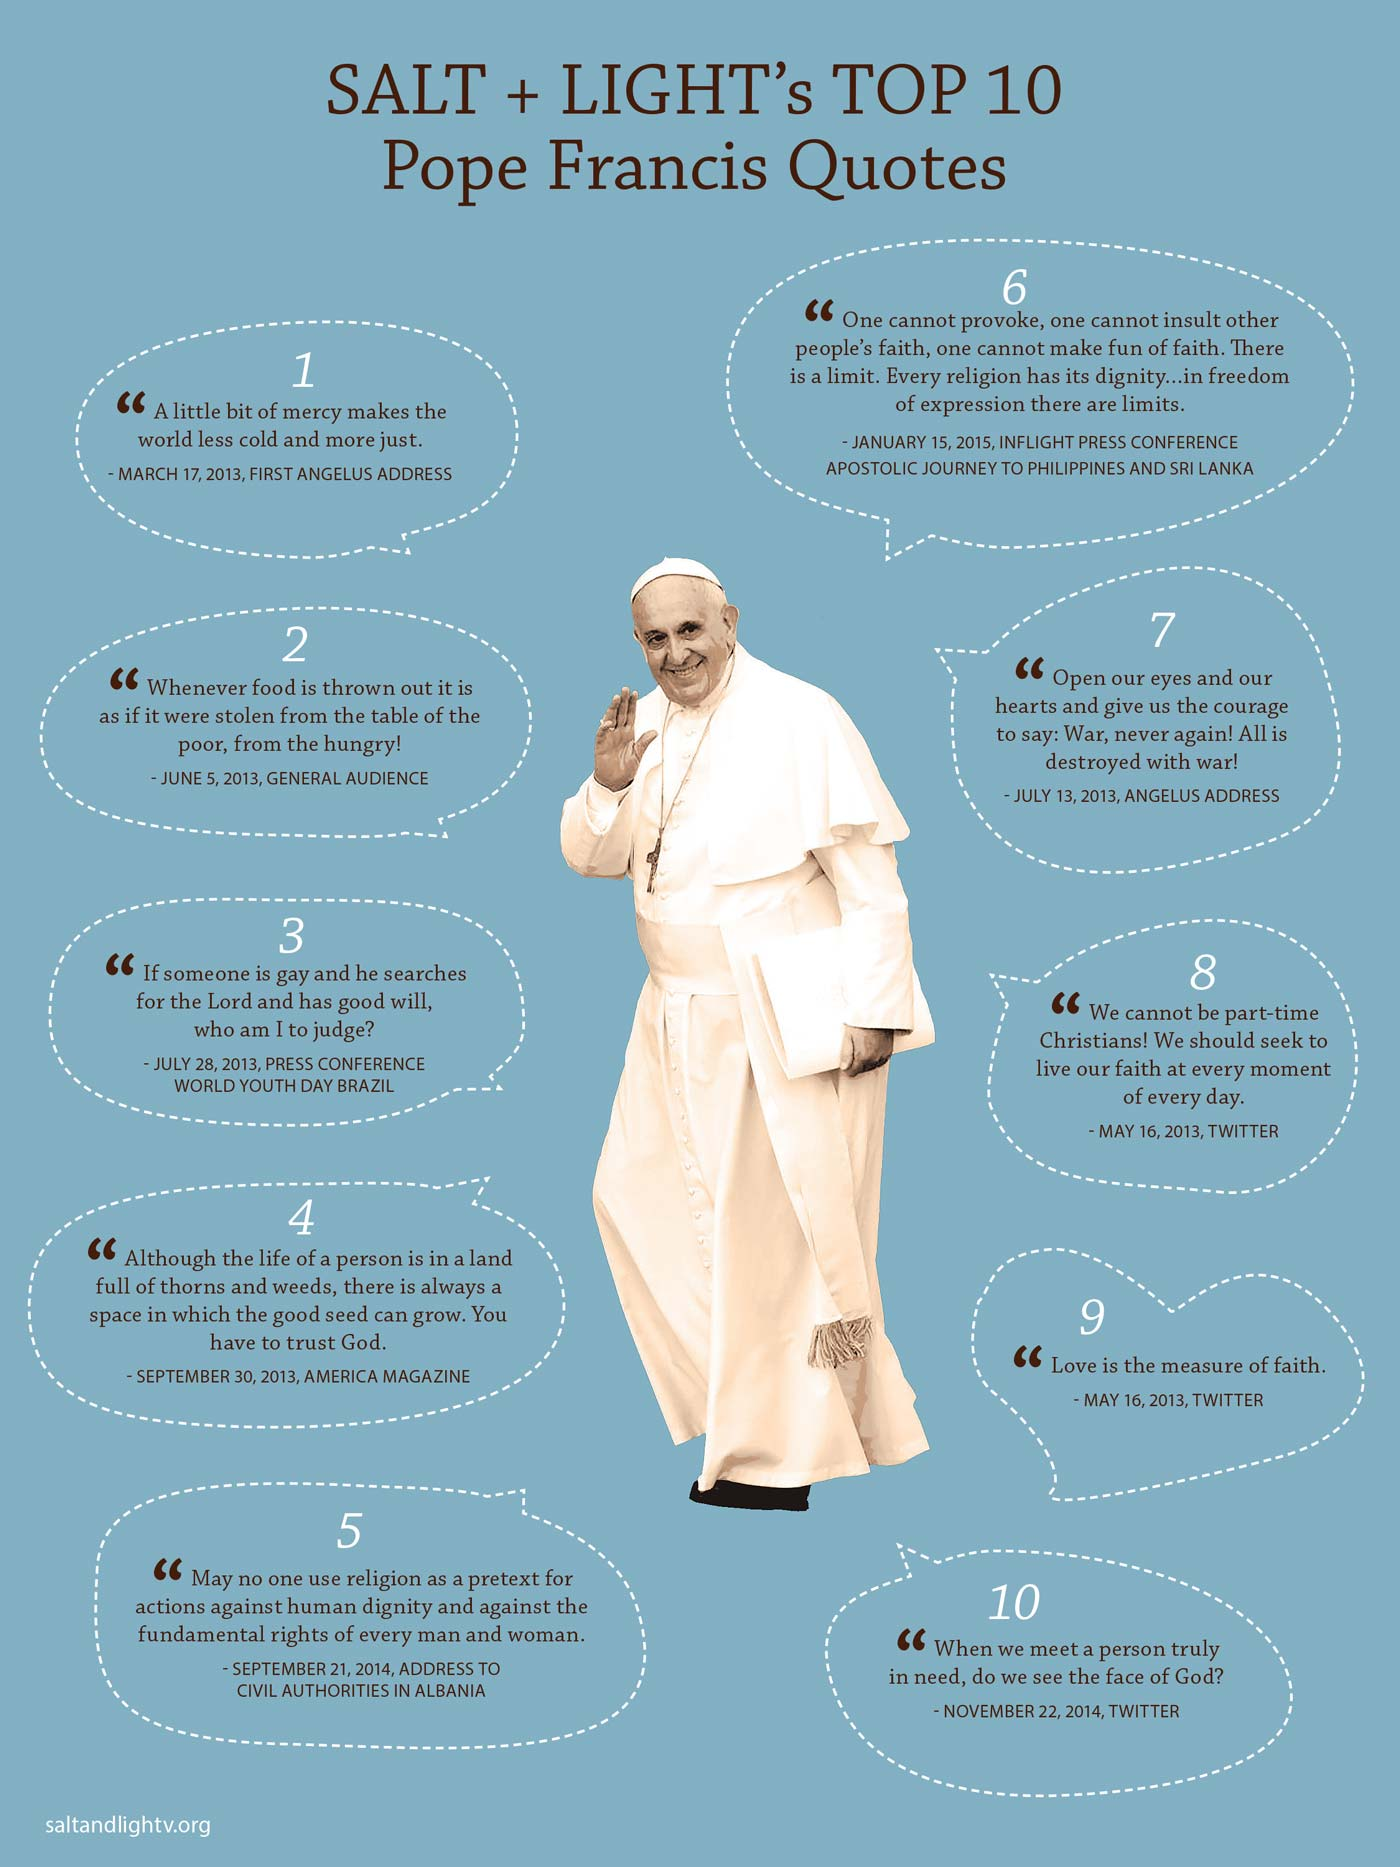 Sls 10 Favourite Pope Francis Quotes Salt And Light Catholic